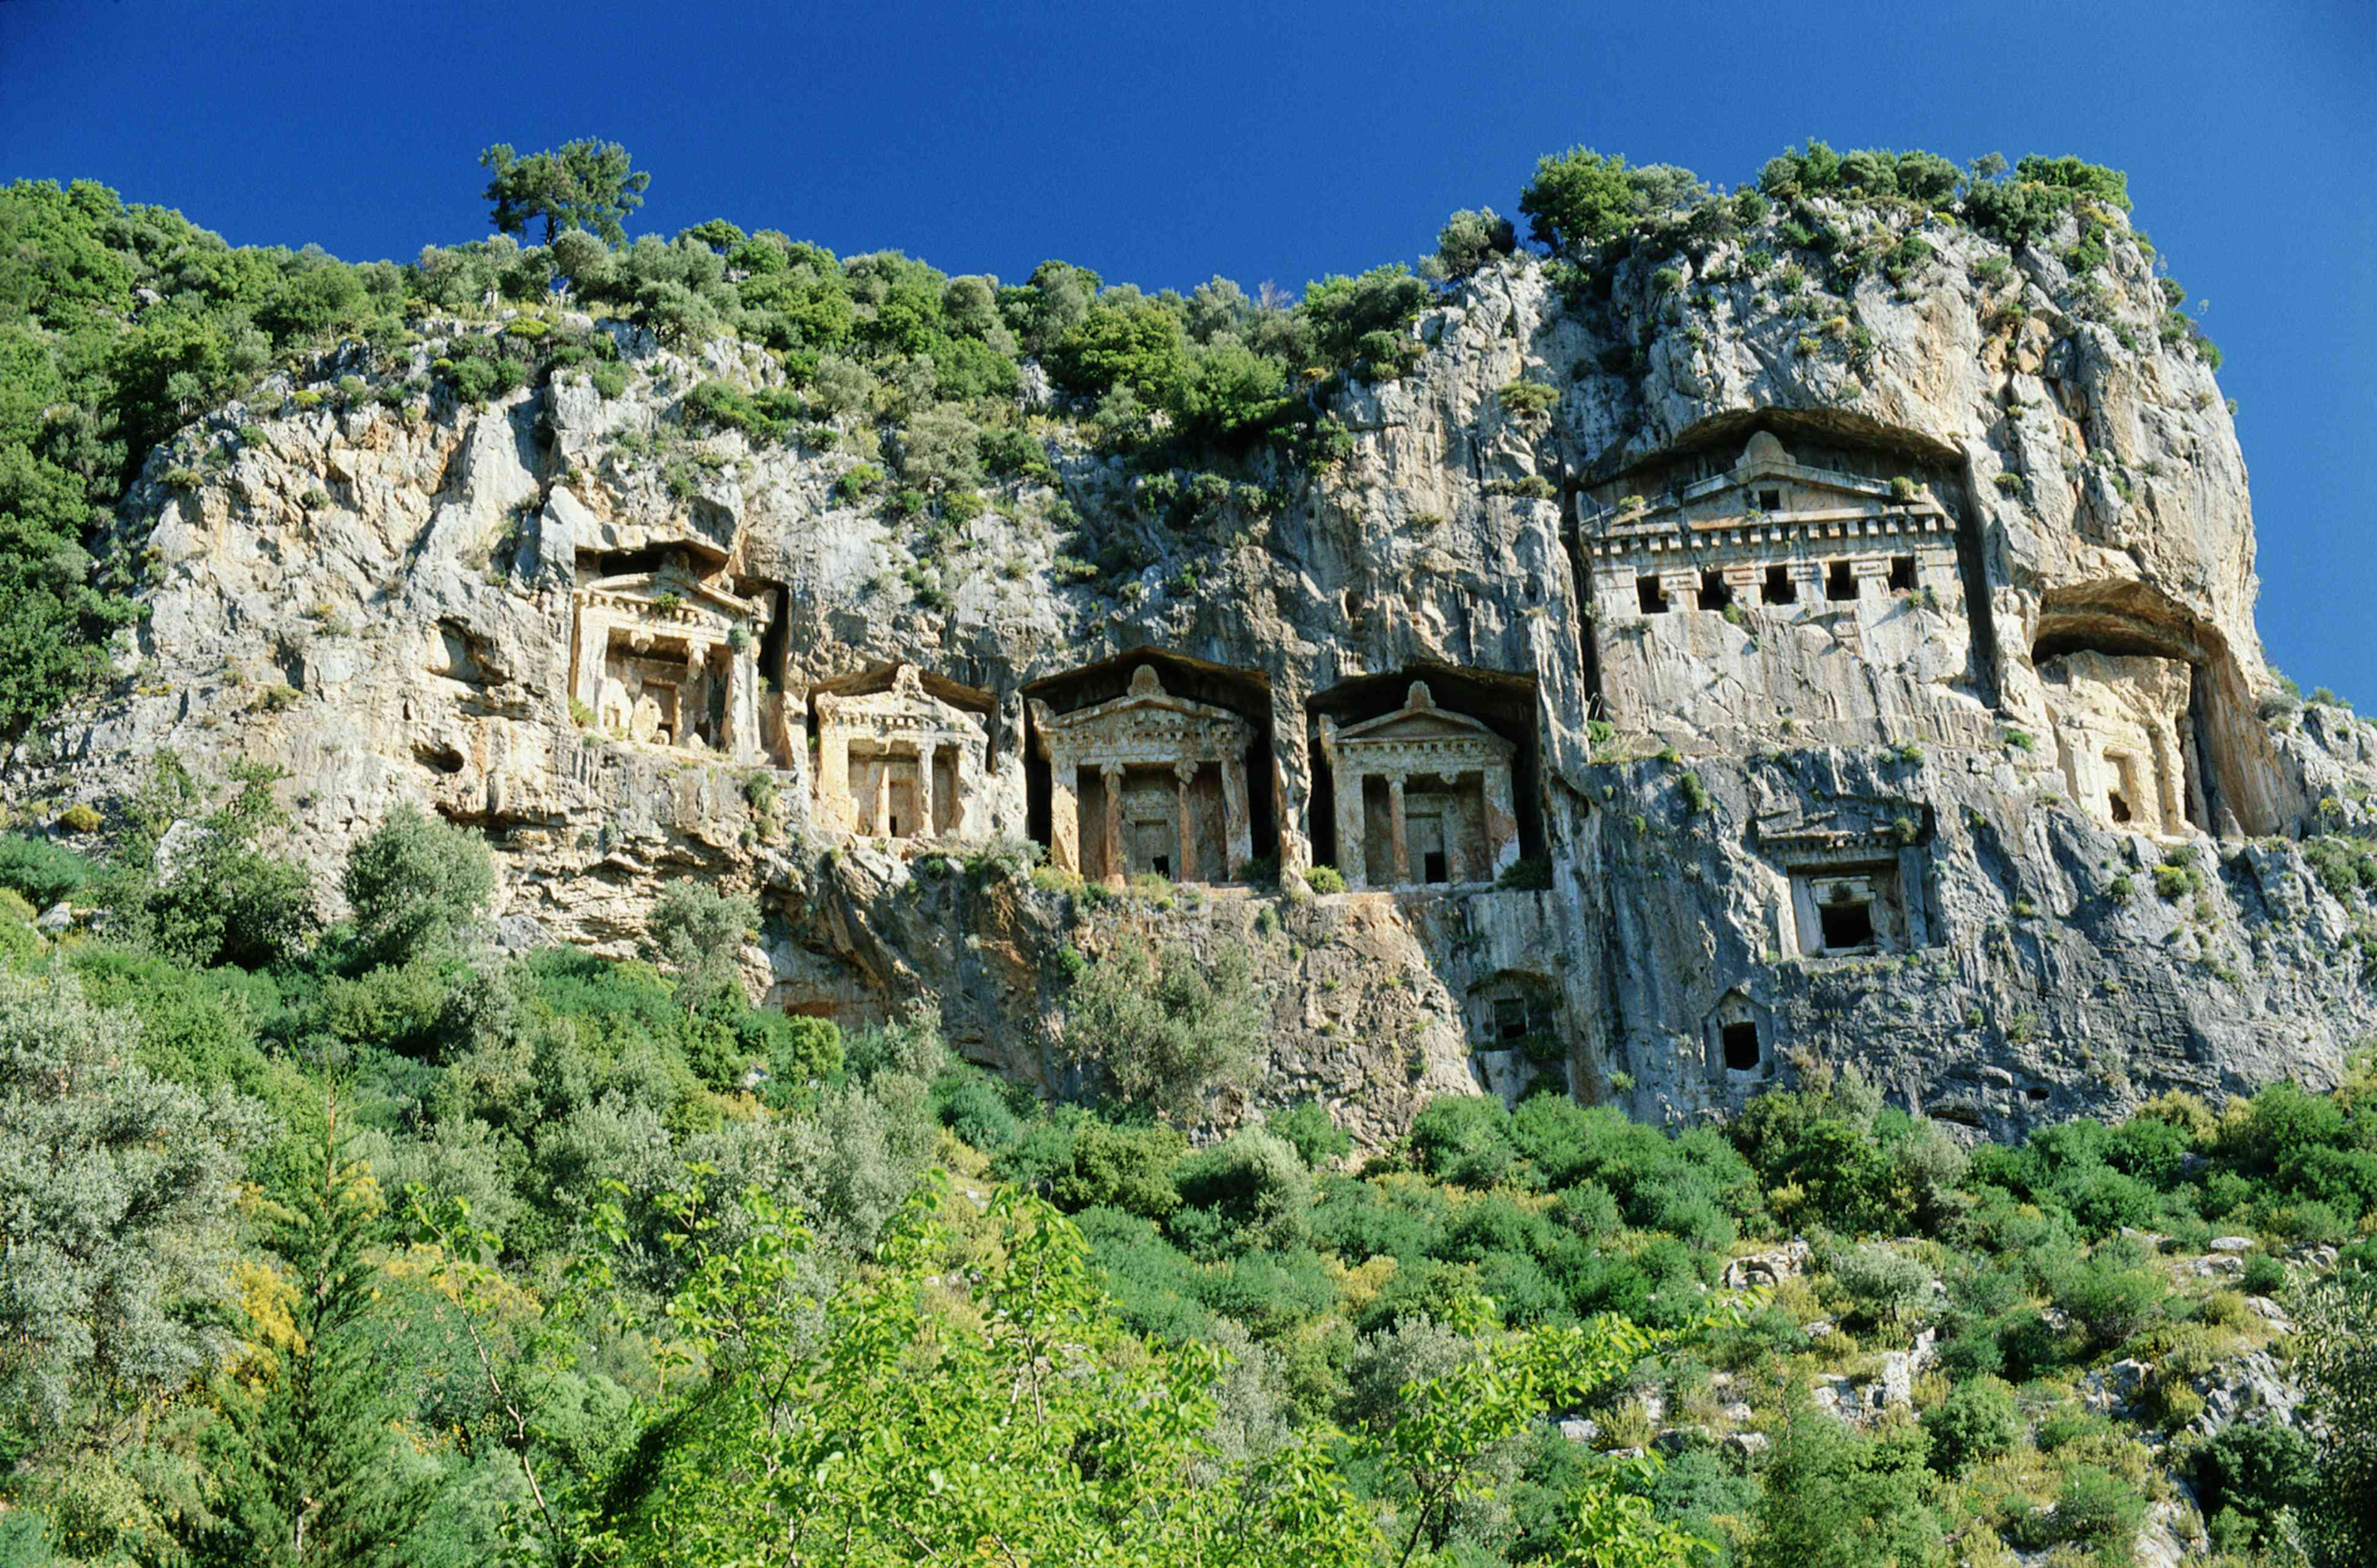 Lycian rock-cut cliff tombs surrounded by lush green plants beneath a vibrant blue sky